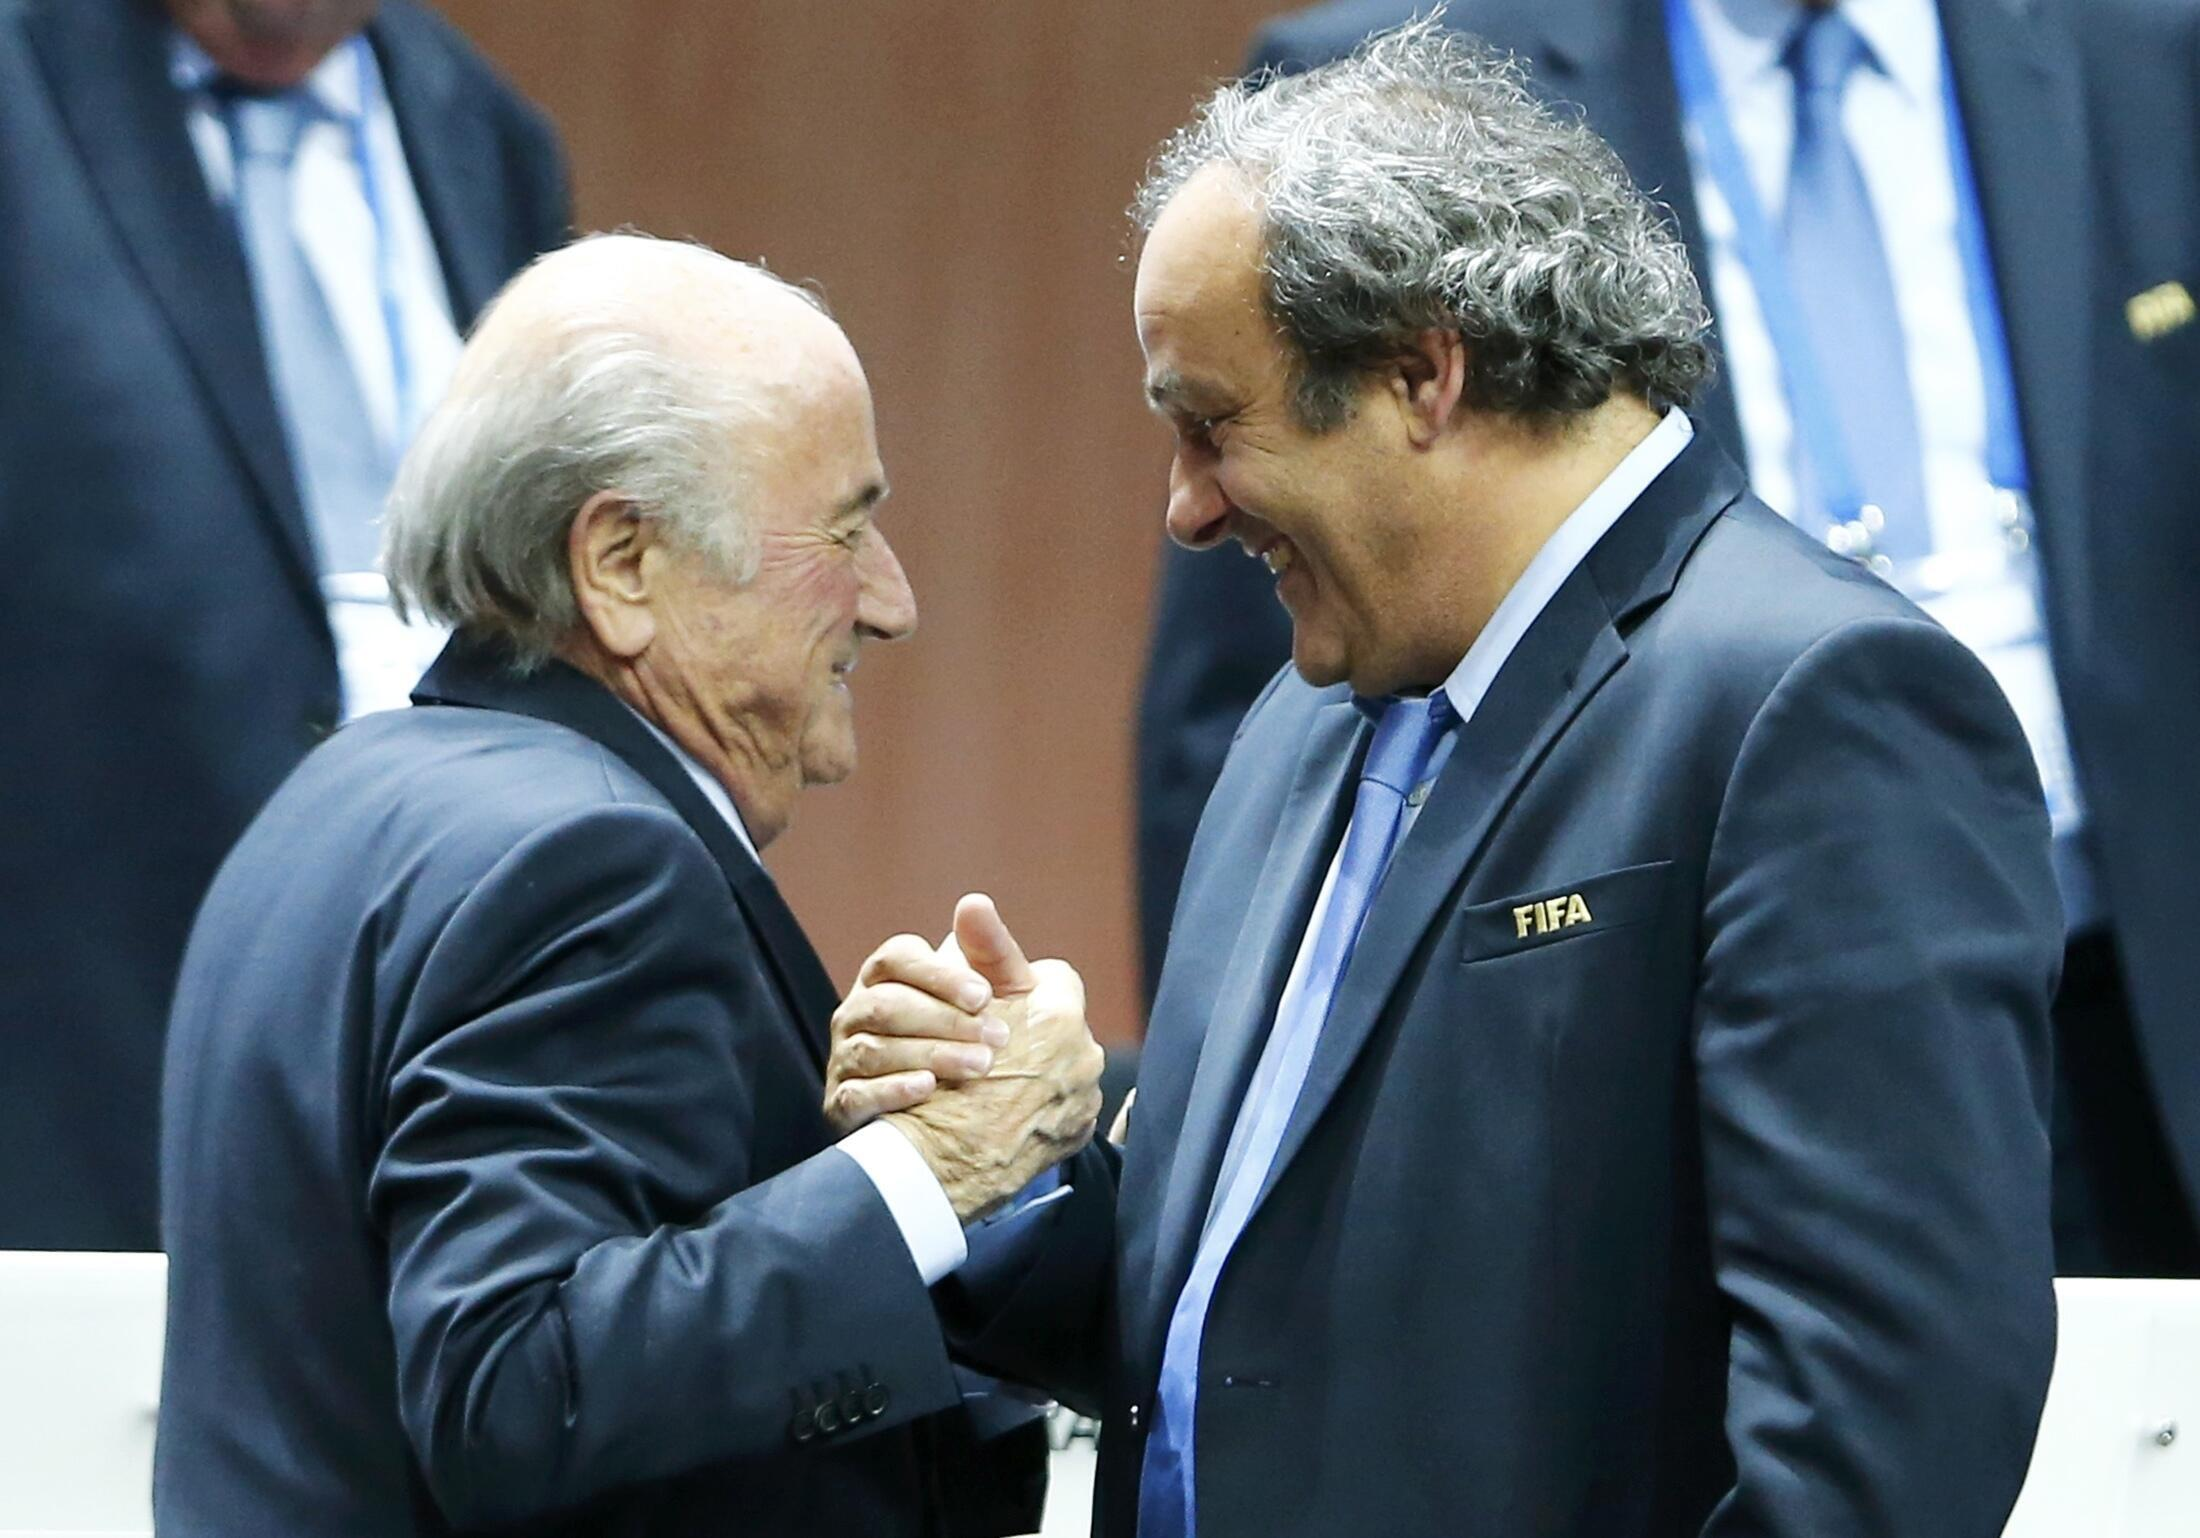 Suspended FIFA President Blatter and European soccer boss Platini have been banned for eight years.